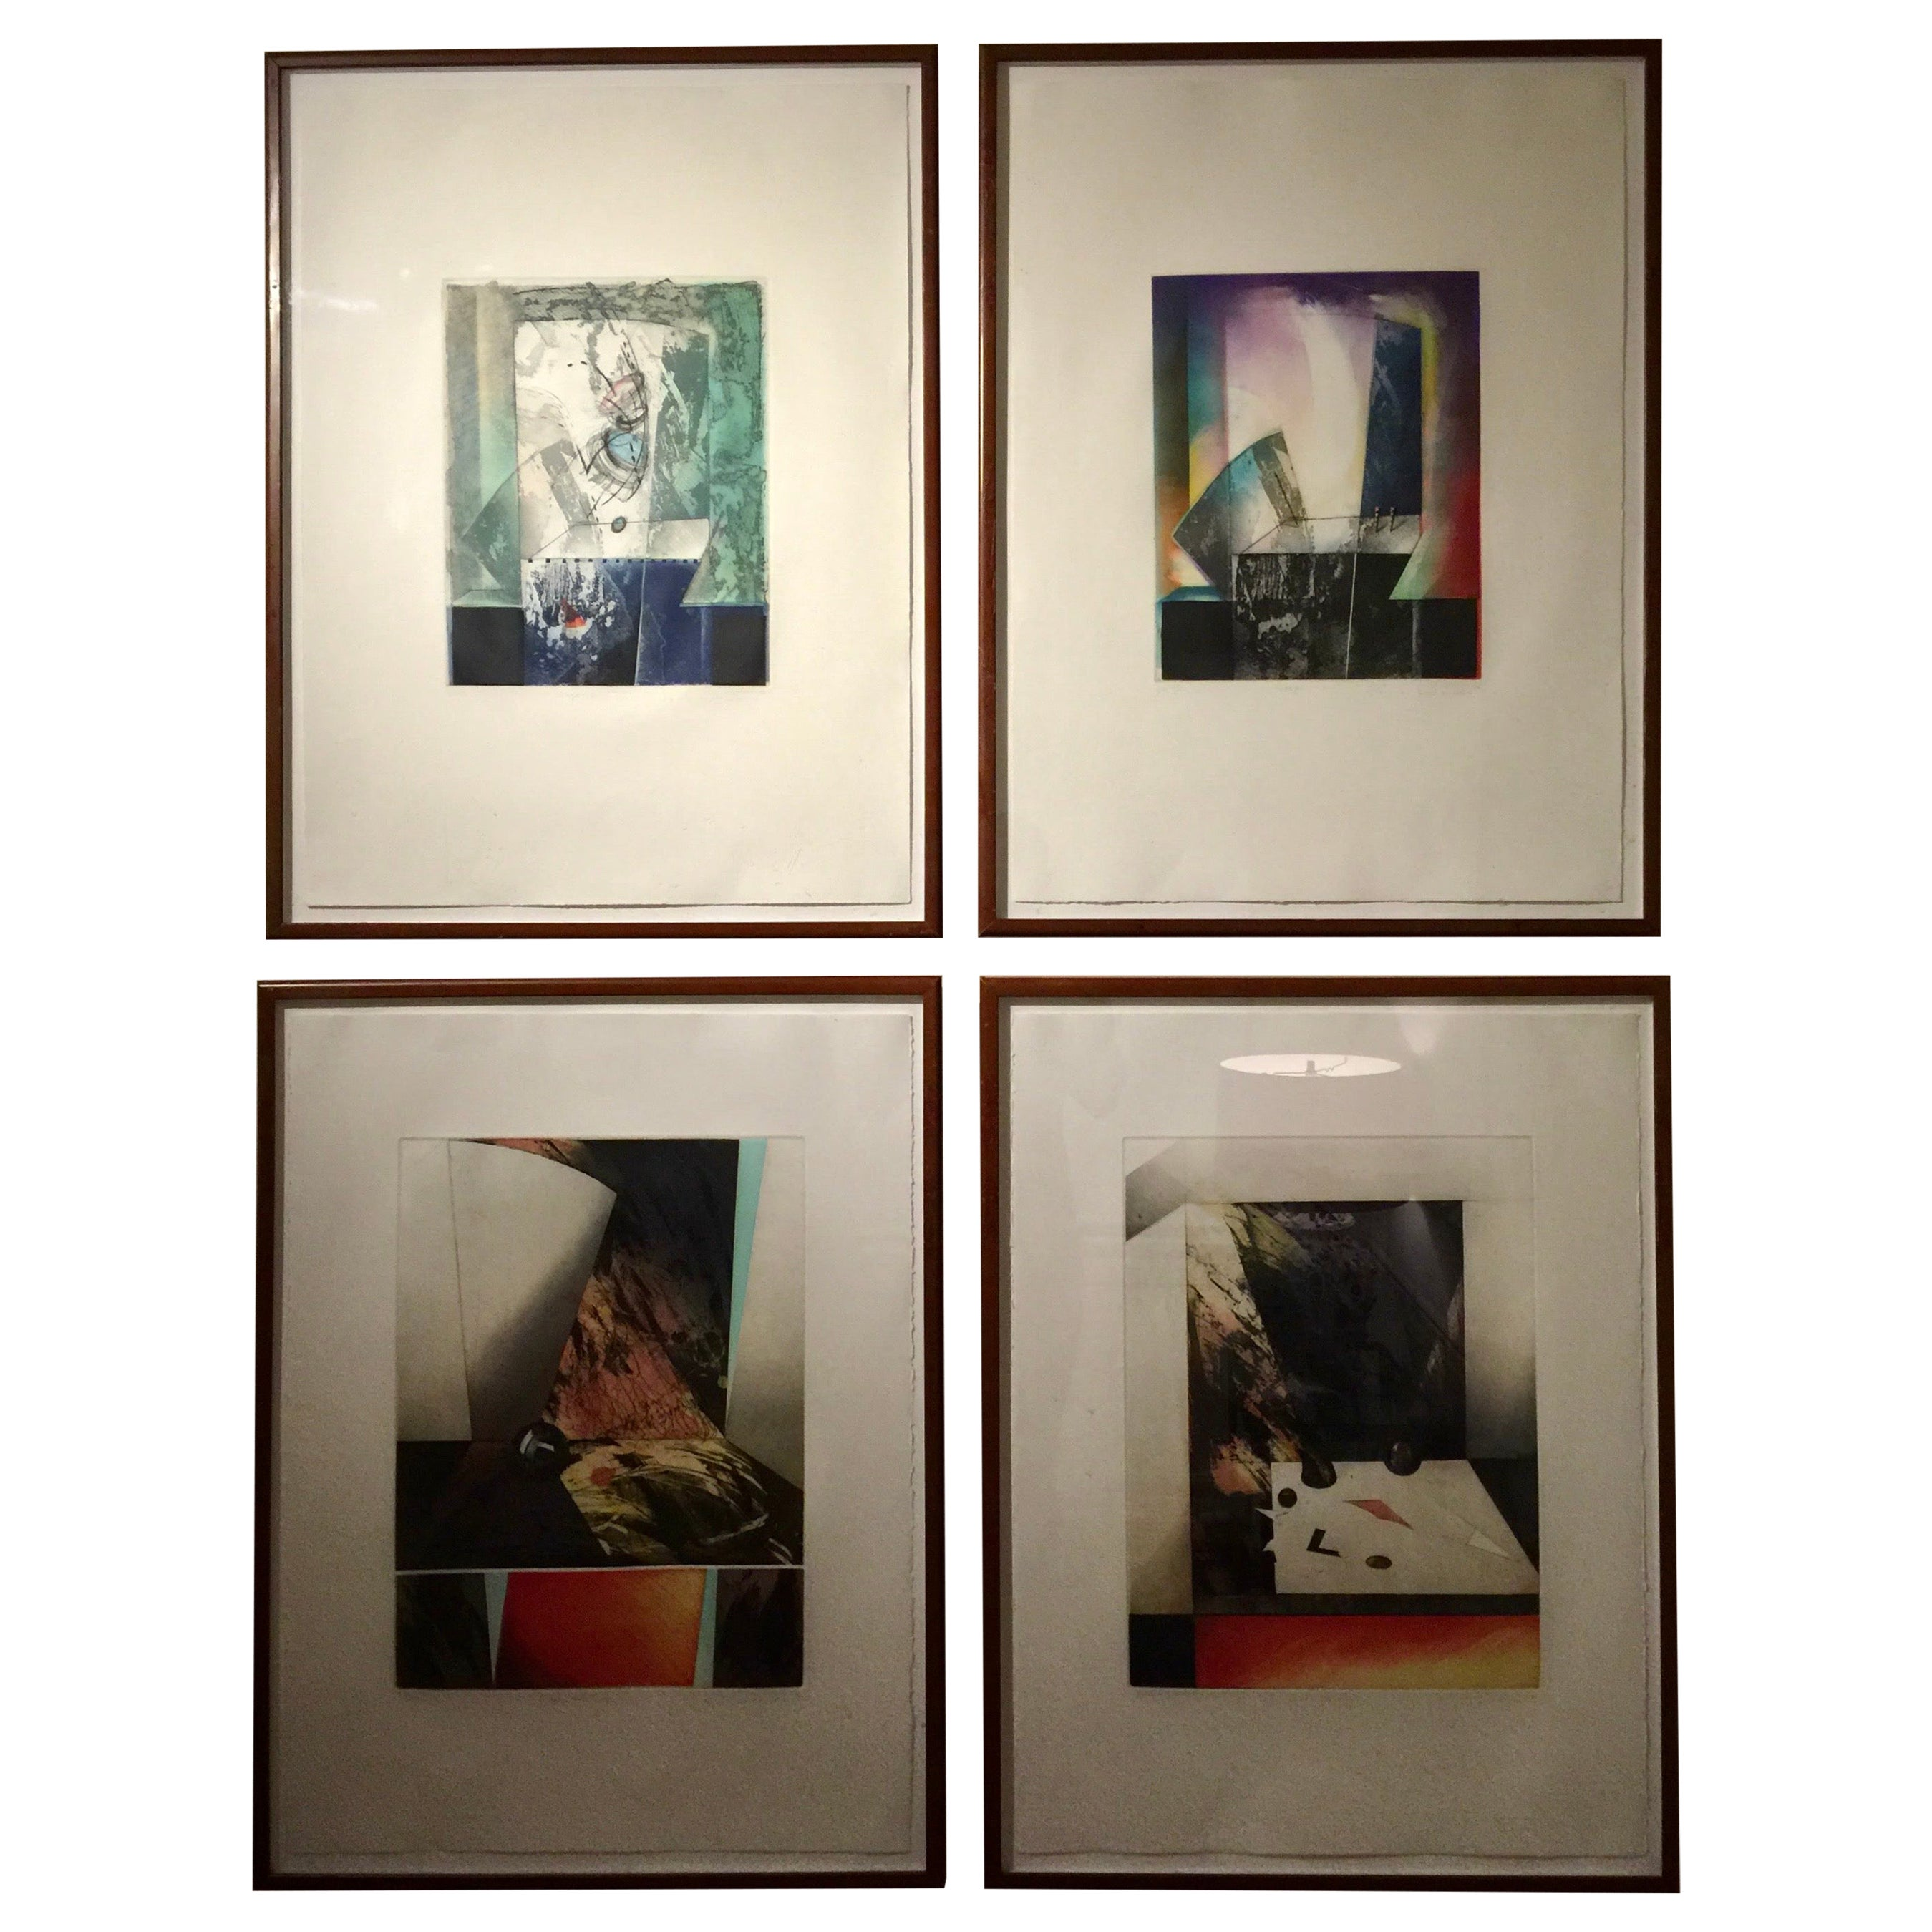 Set of 4 Signed Abstract Intaglio Prints by Kazuko Watanabe, Framed